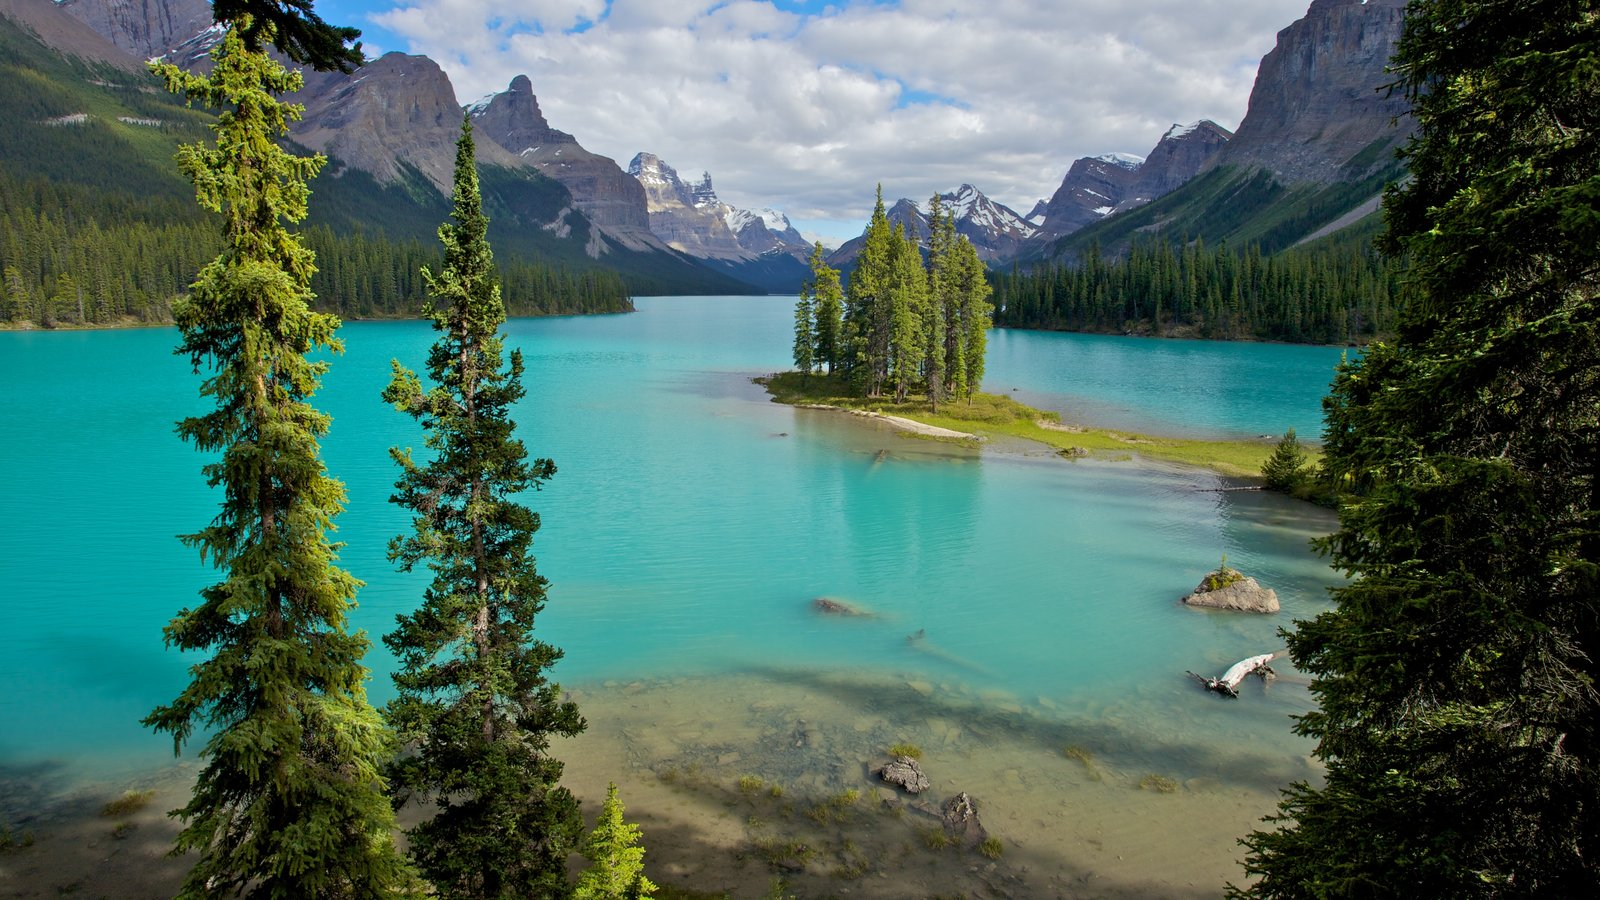 Maligne Lake featuring landscape views and a lake or waterhole